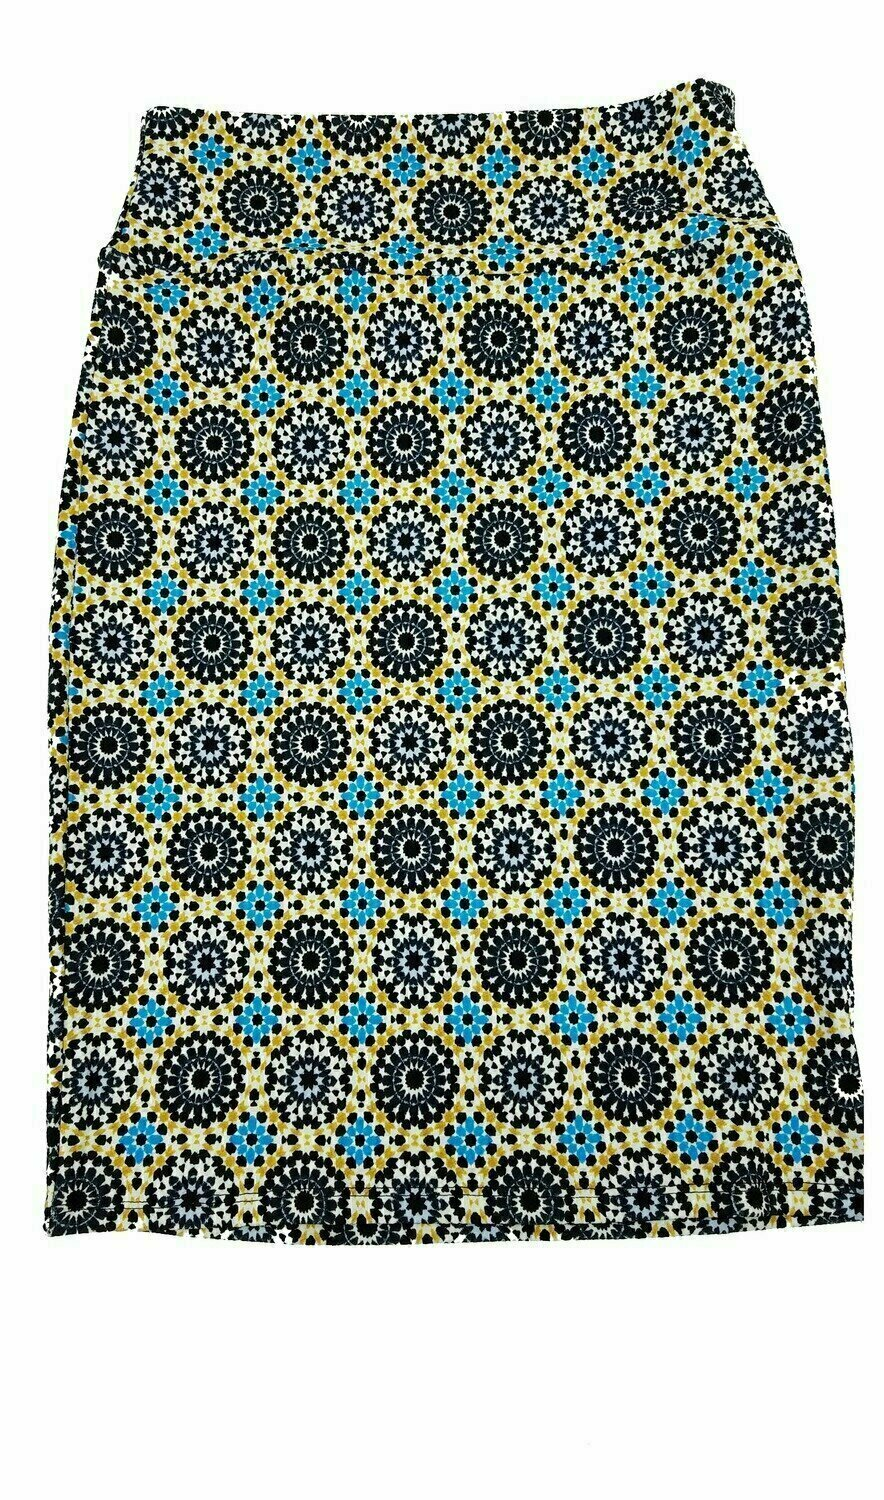 LuLaRoe Cassie Small S Womens Knee Length Pencil Skirt fits sizes 6-8  S50